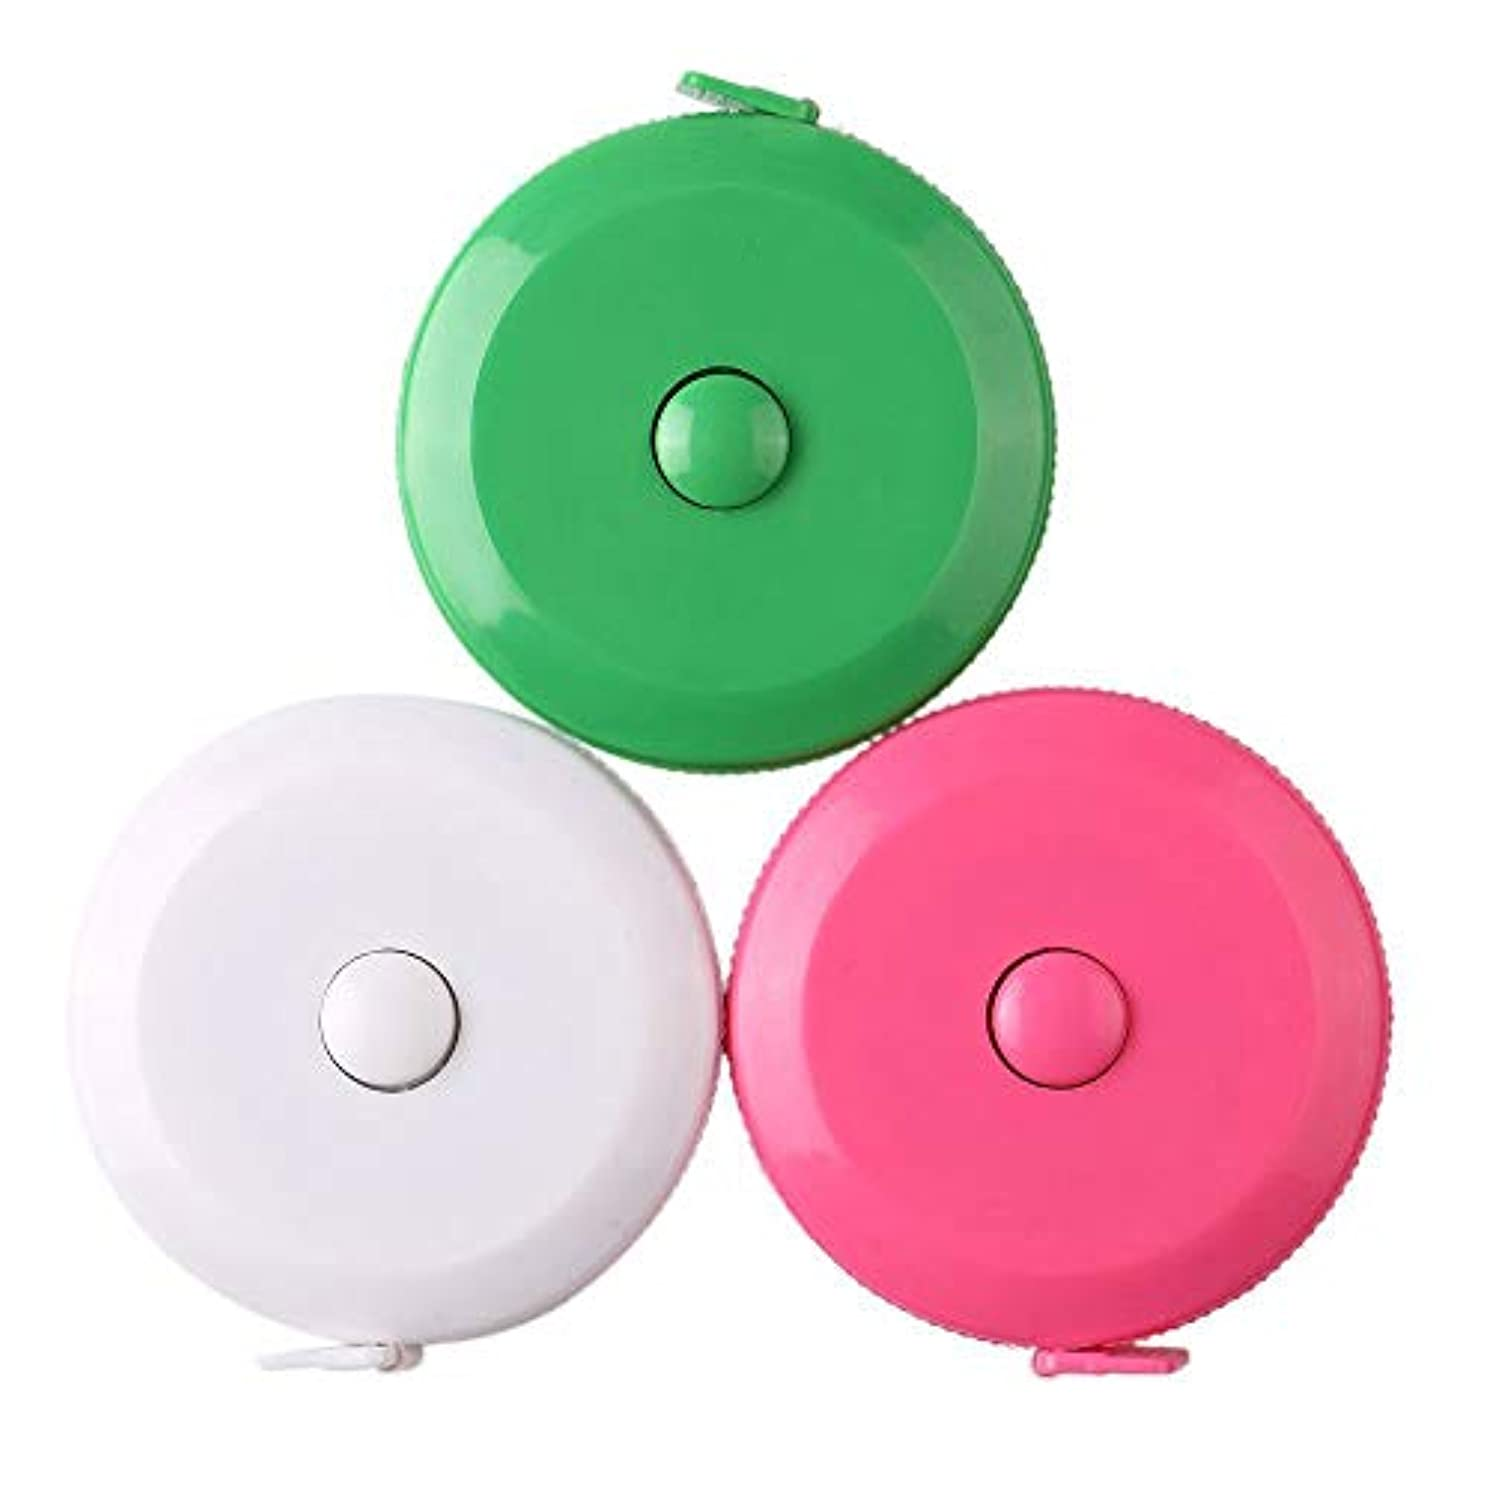 3 Pack Tape Measure 150 cm 60 Inch Push Button Tape Body Measuring Soft Retractable for Sewing Double-Sided Tailor Cloth Ruler (Pink Green White) By BUSHIBU